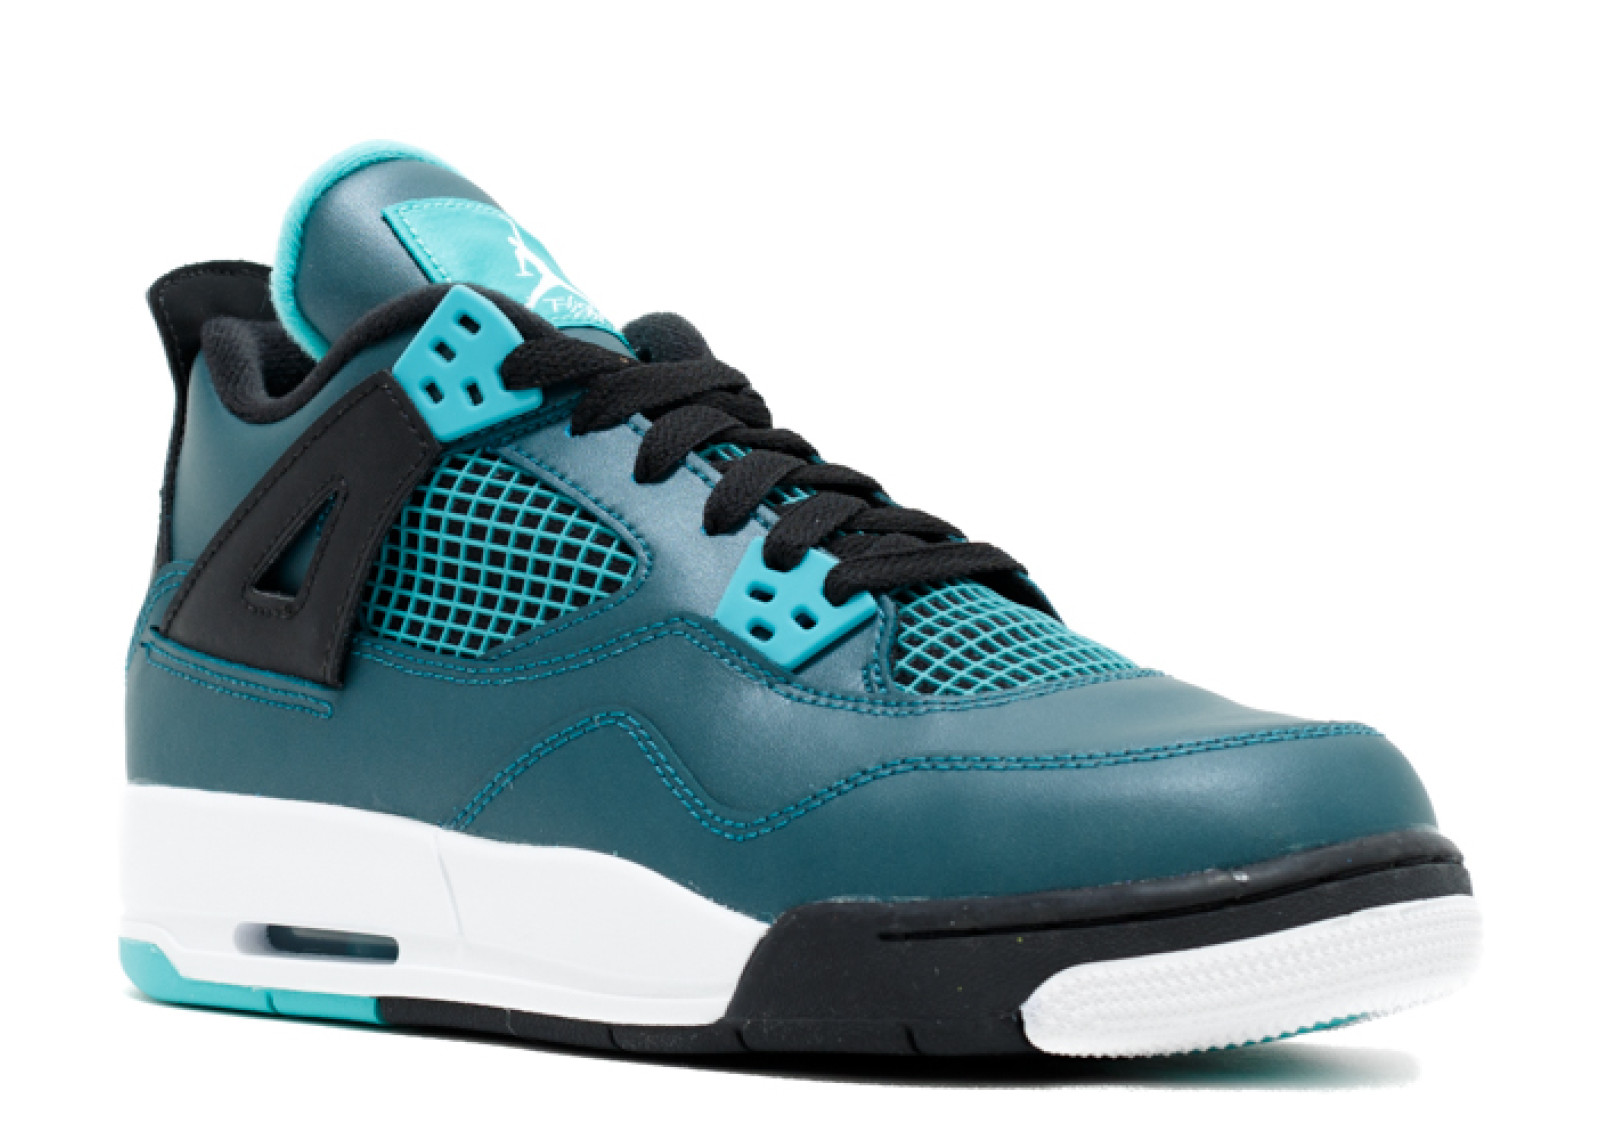 53afb7896ac8c1 ... closeout air jordan unisex air jordan 4 retro 30th bg gs teal 705330  330 size 4.5